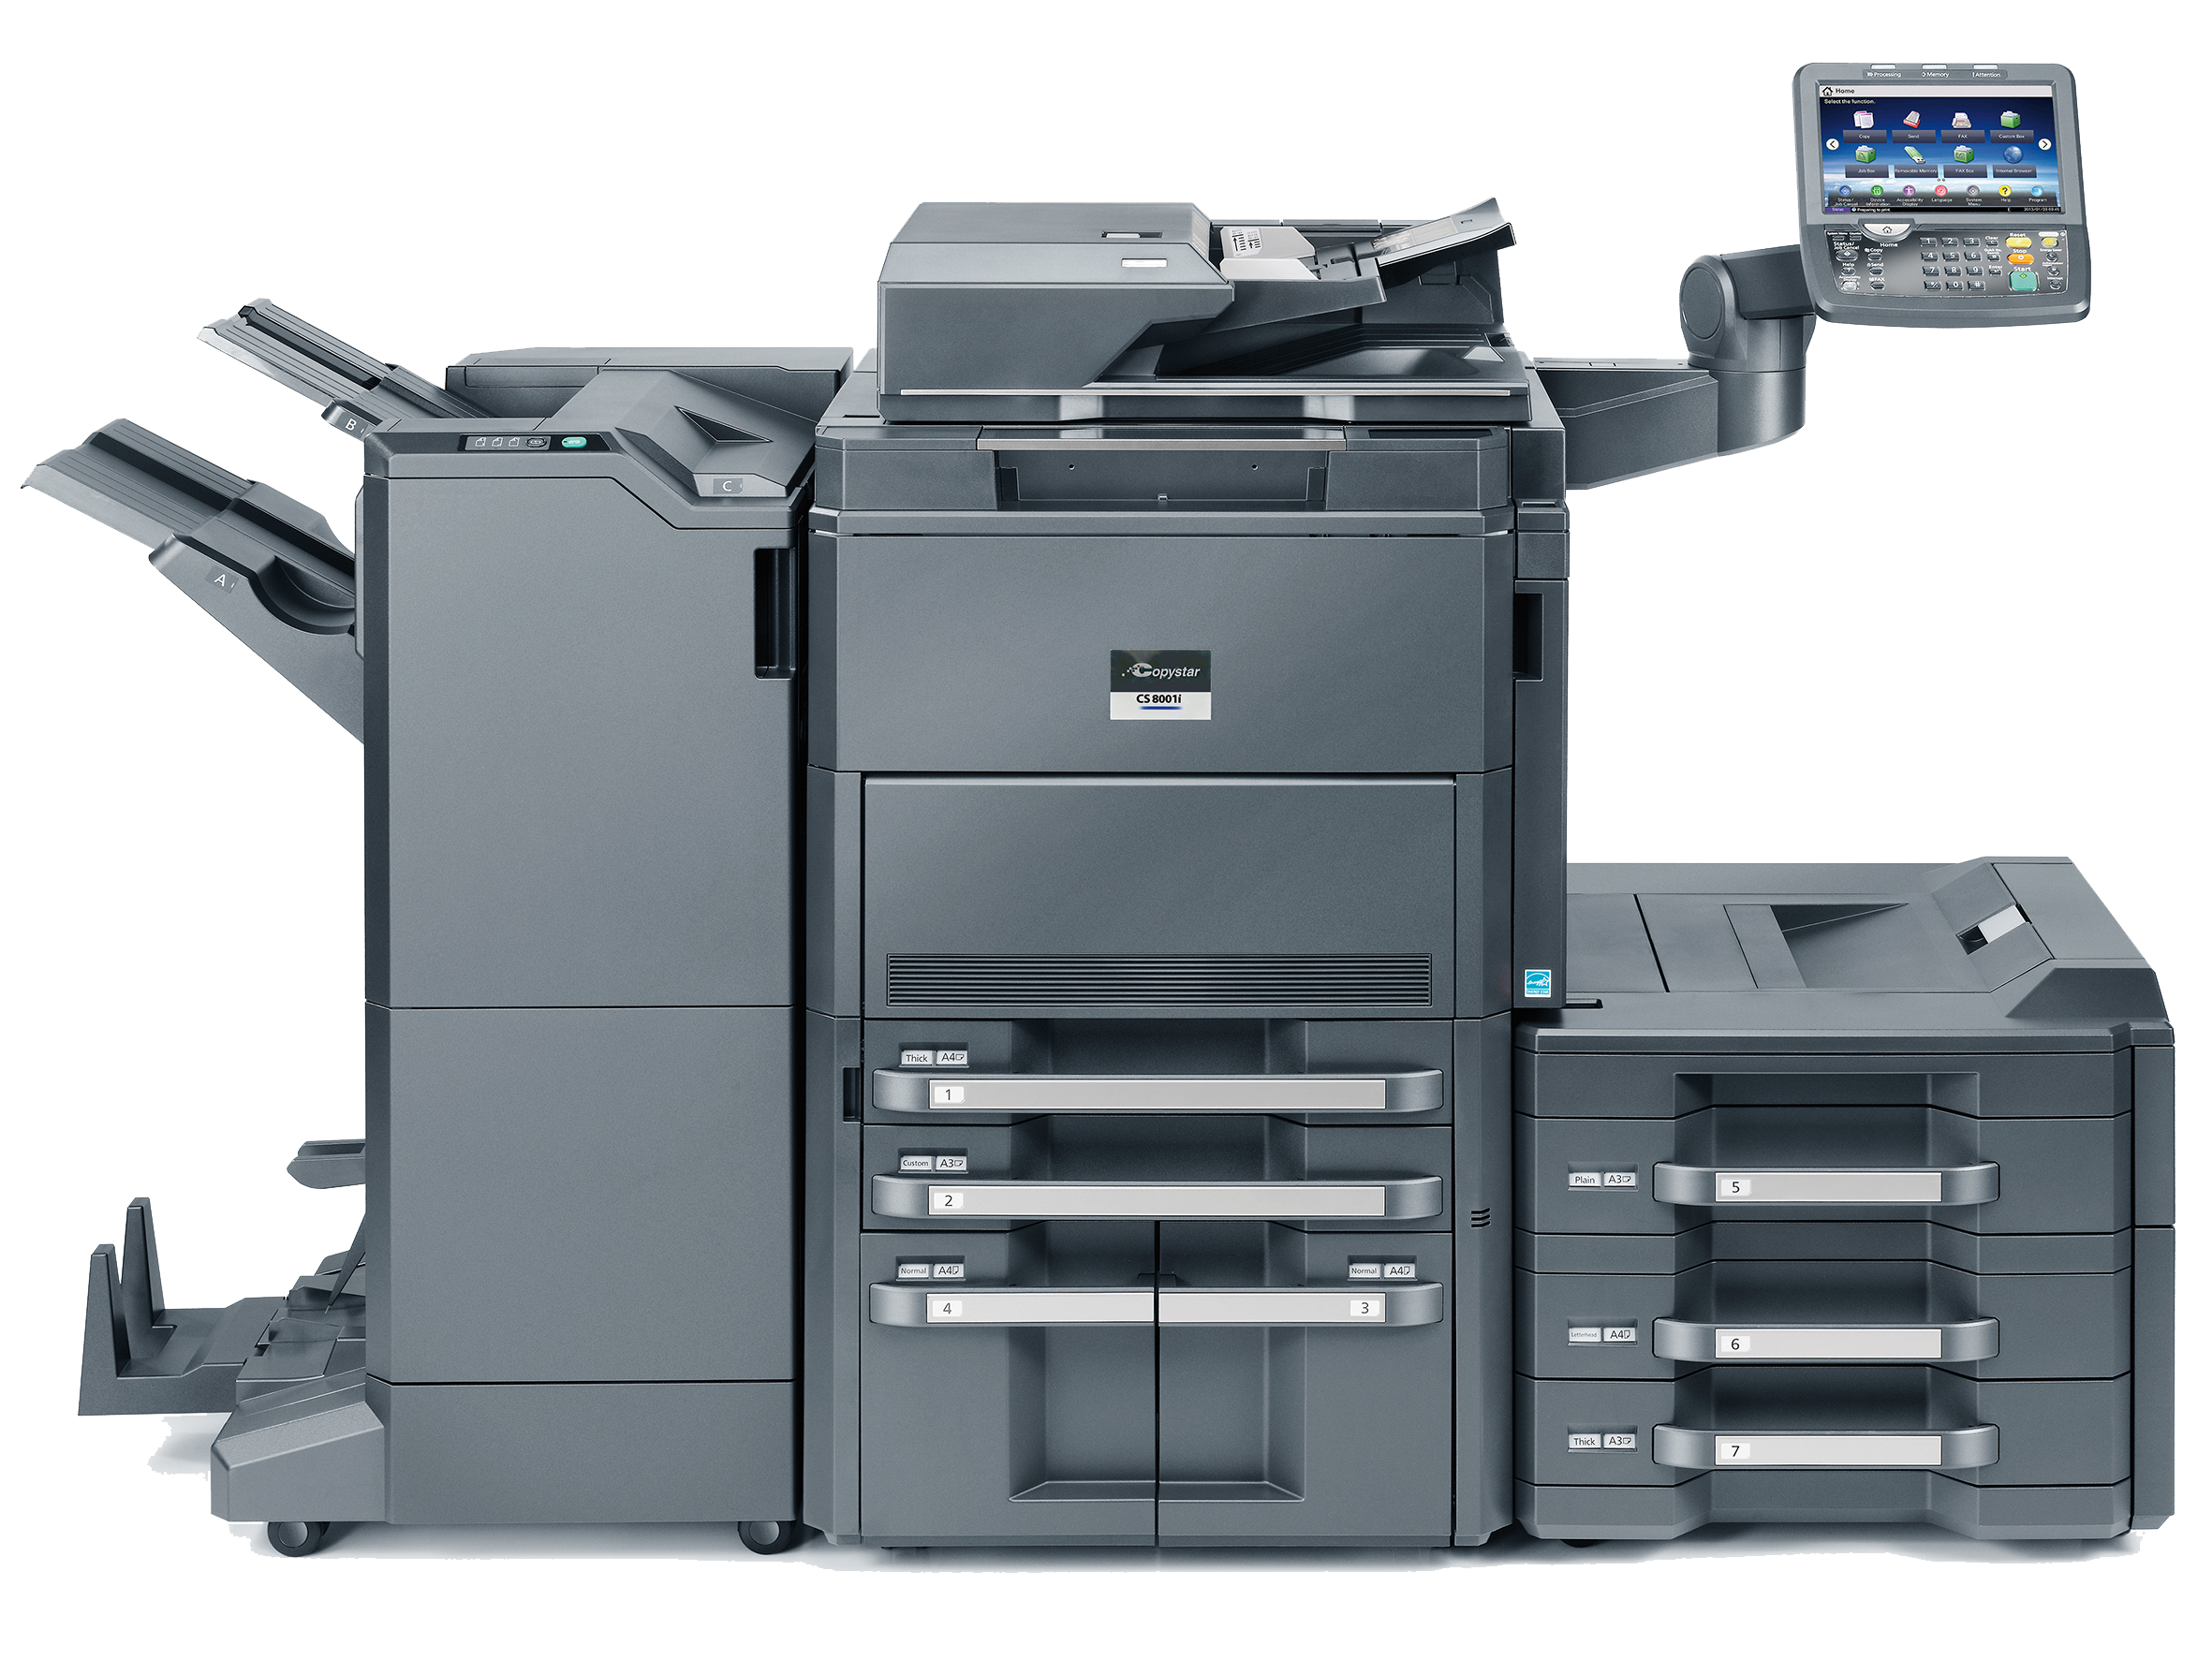 Kyocera Copystar Color Copier Copier Lease Rates 55014, 55025, 55038, 55110, 55126